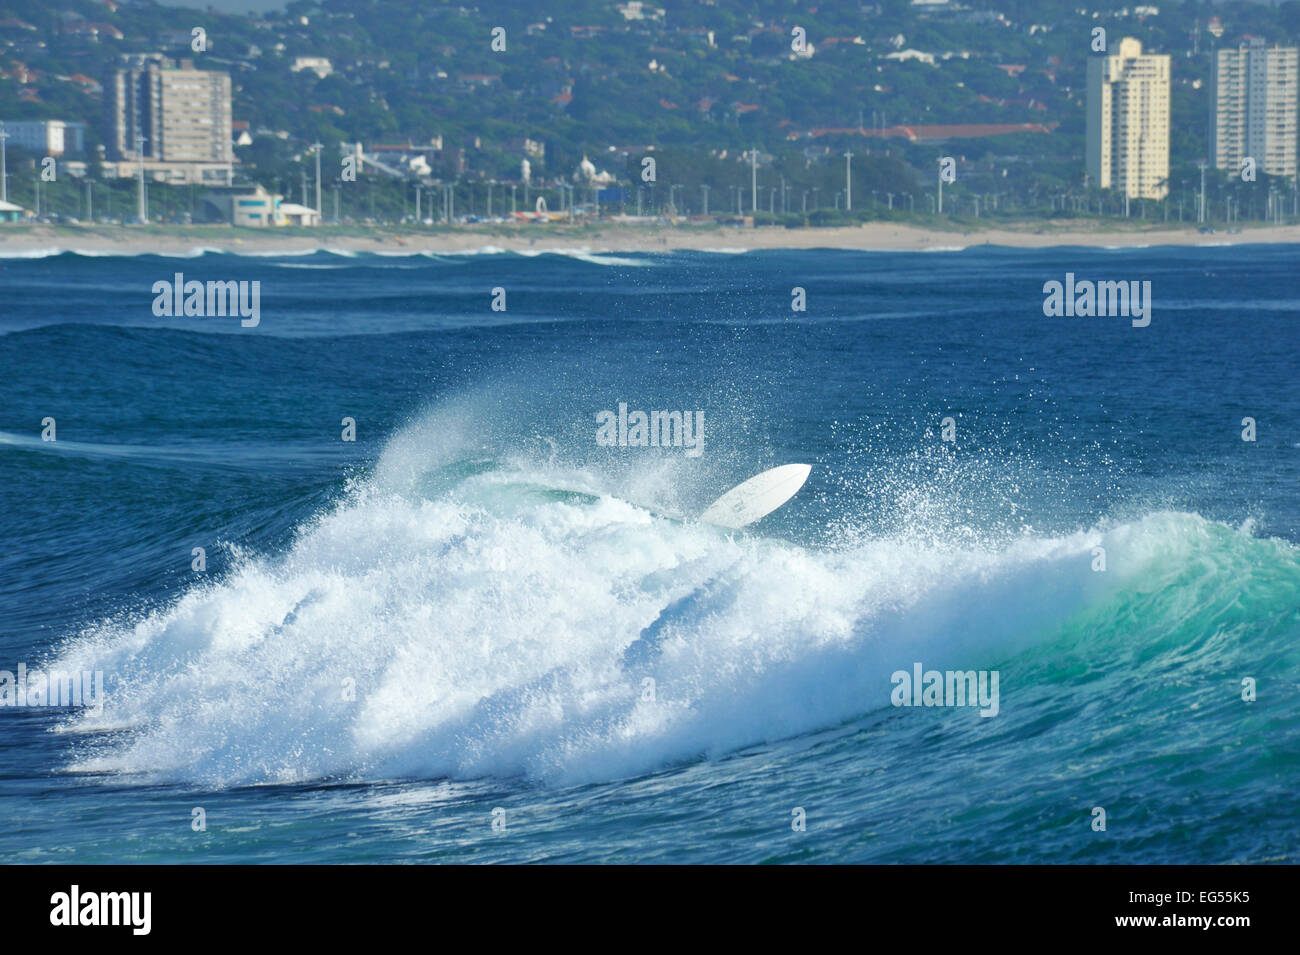 White surfboard flying out of water after surfer wipe-out on breaking wave, bay of Durban, KwaZulu-Natal, South - Stock Image